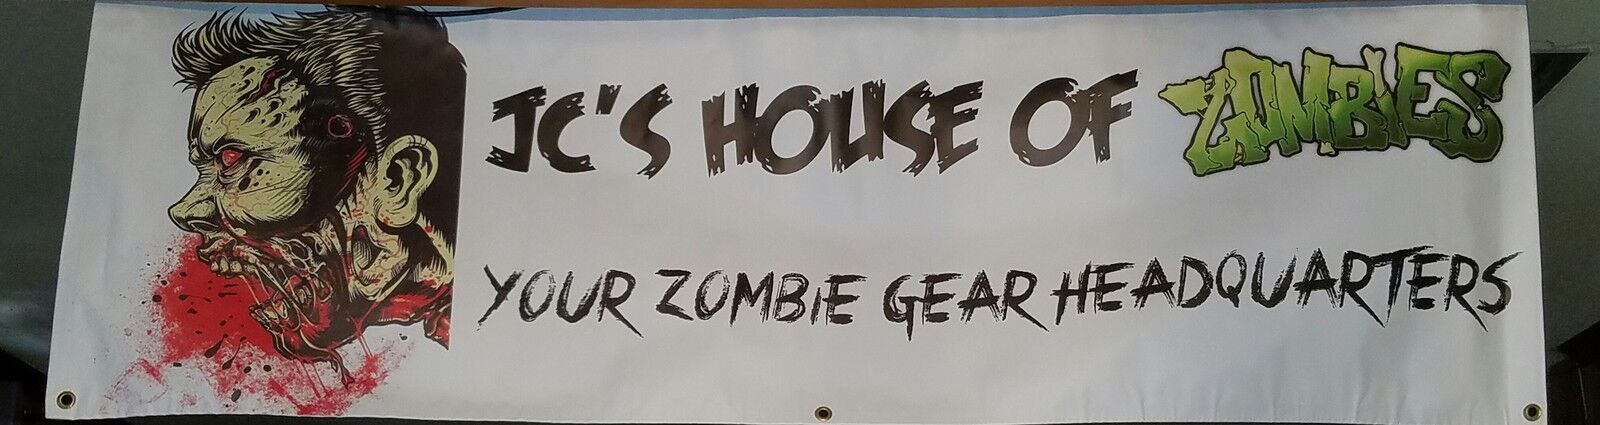 JCS HOUSE OF ZOMBIES